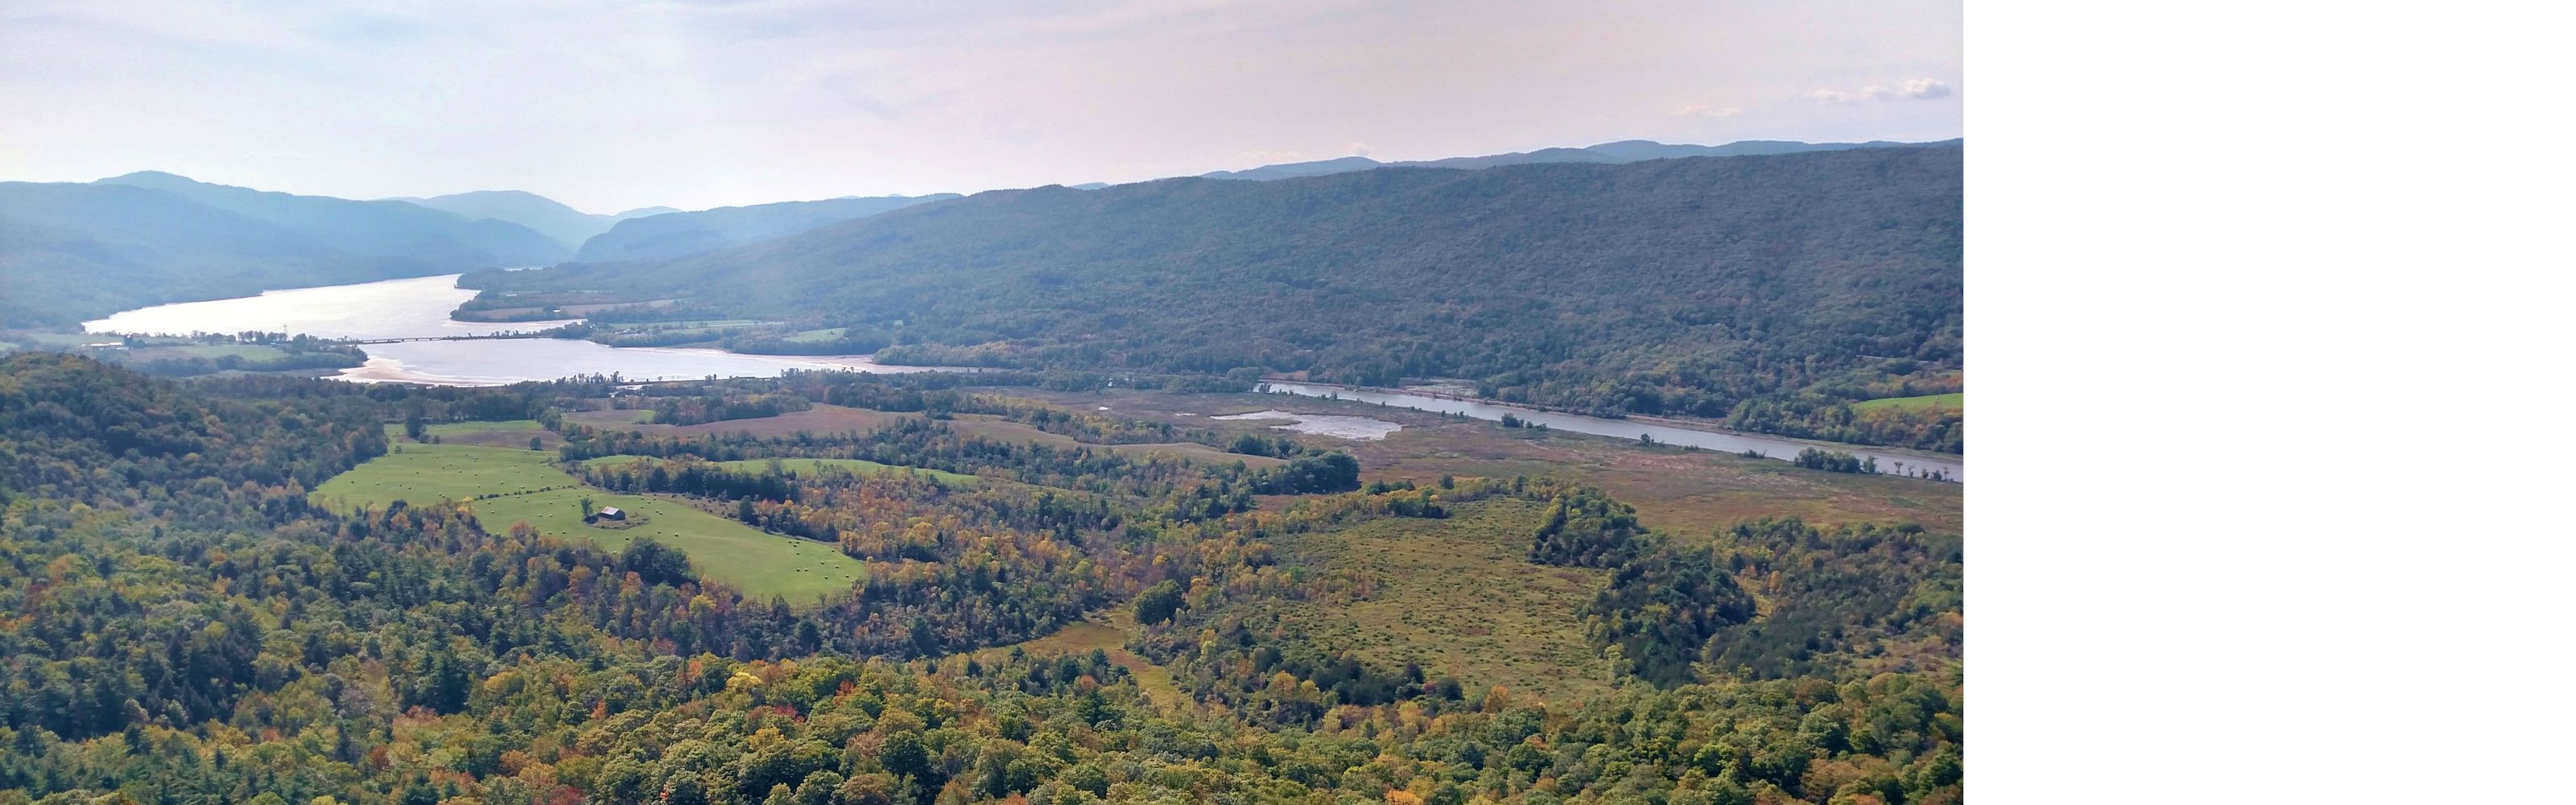 at Bald Mountain is the largest and most ecologically diverse natural area managed by The Nature Conservancy in Vermont.